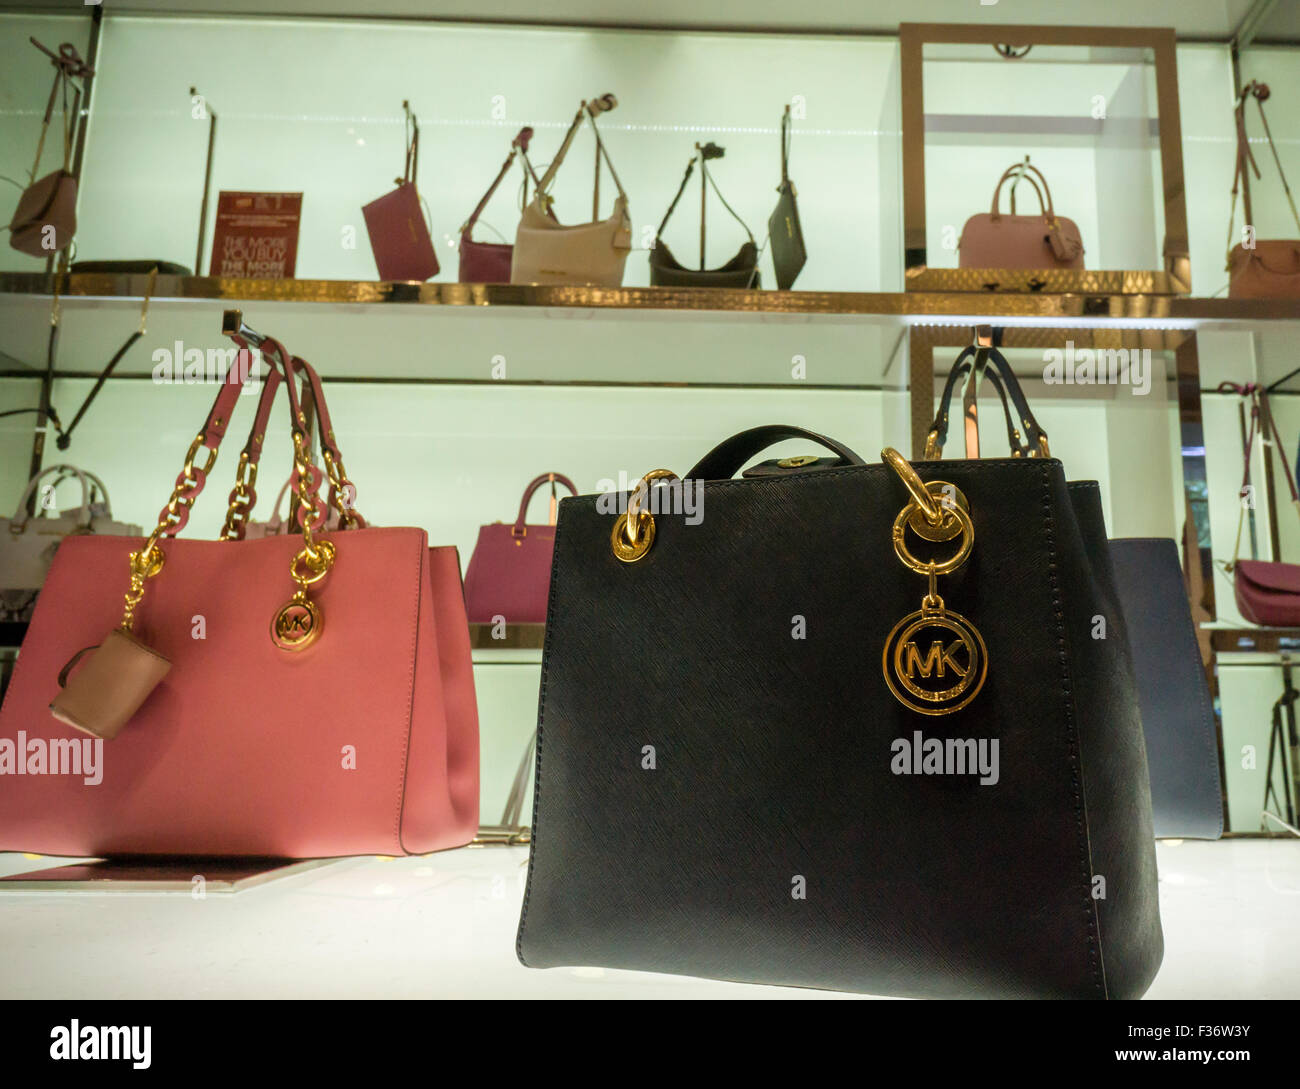 3d798e0c961e Handbags on display at the Michael Kors boutique within Macy's in New York  on Sunday,